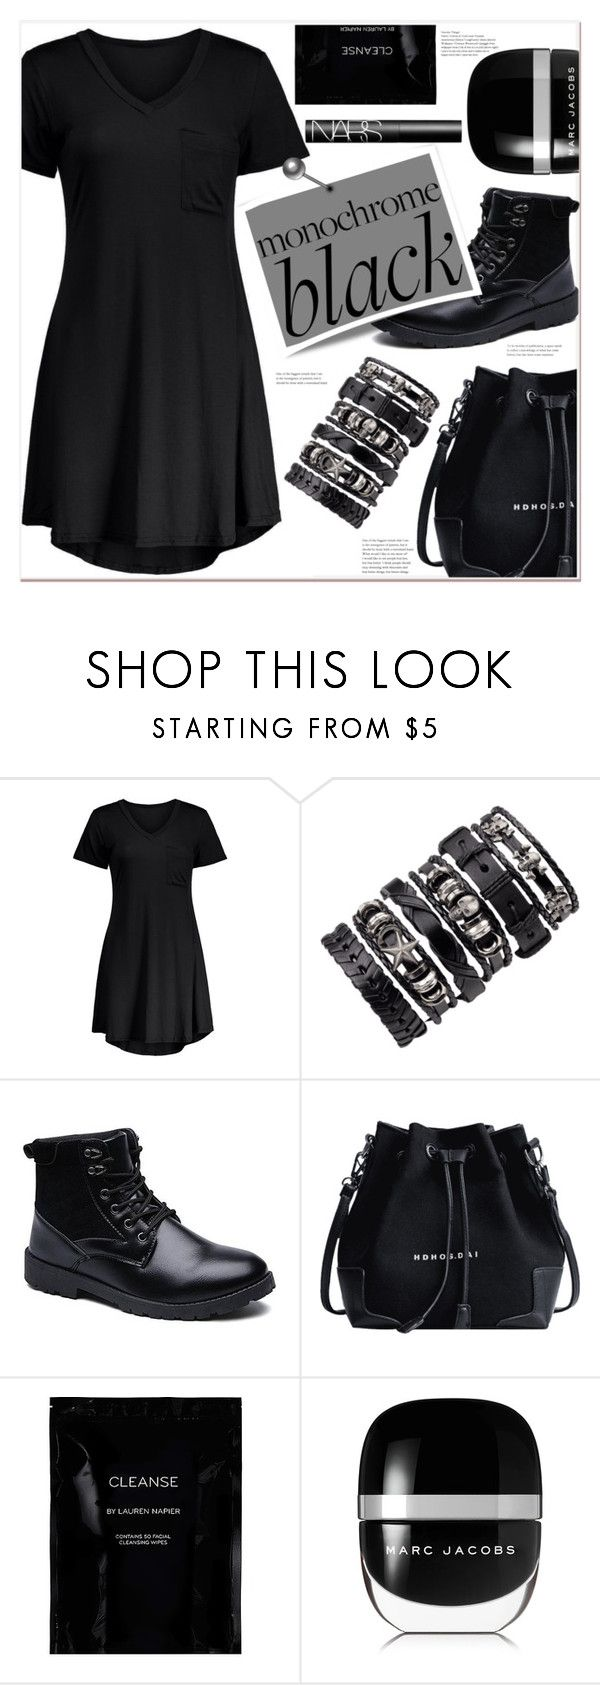 """black"" by mycherryblossom ❤ liked on Polyvore featuring Cleanse by Lauren Napier, Marc Jacobs and NARS Cosmetics"